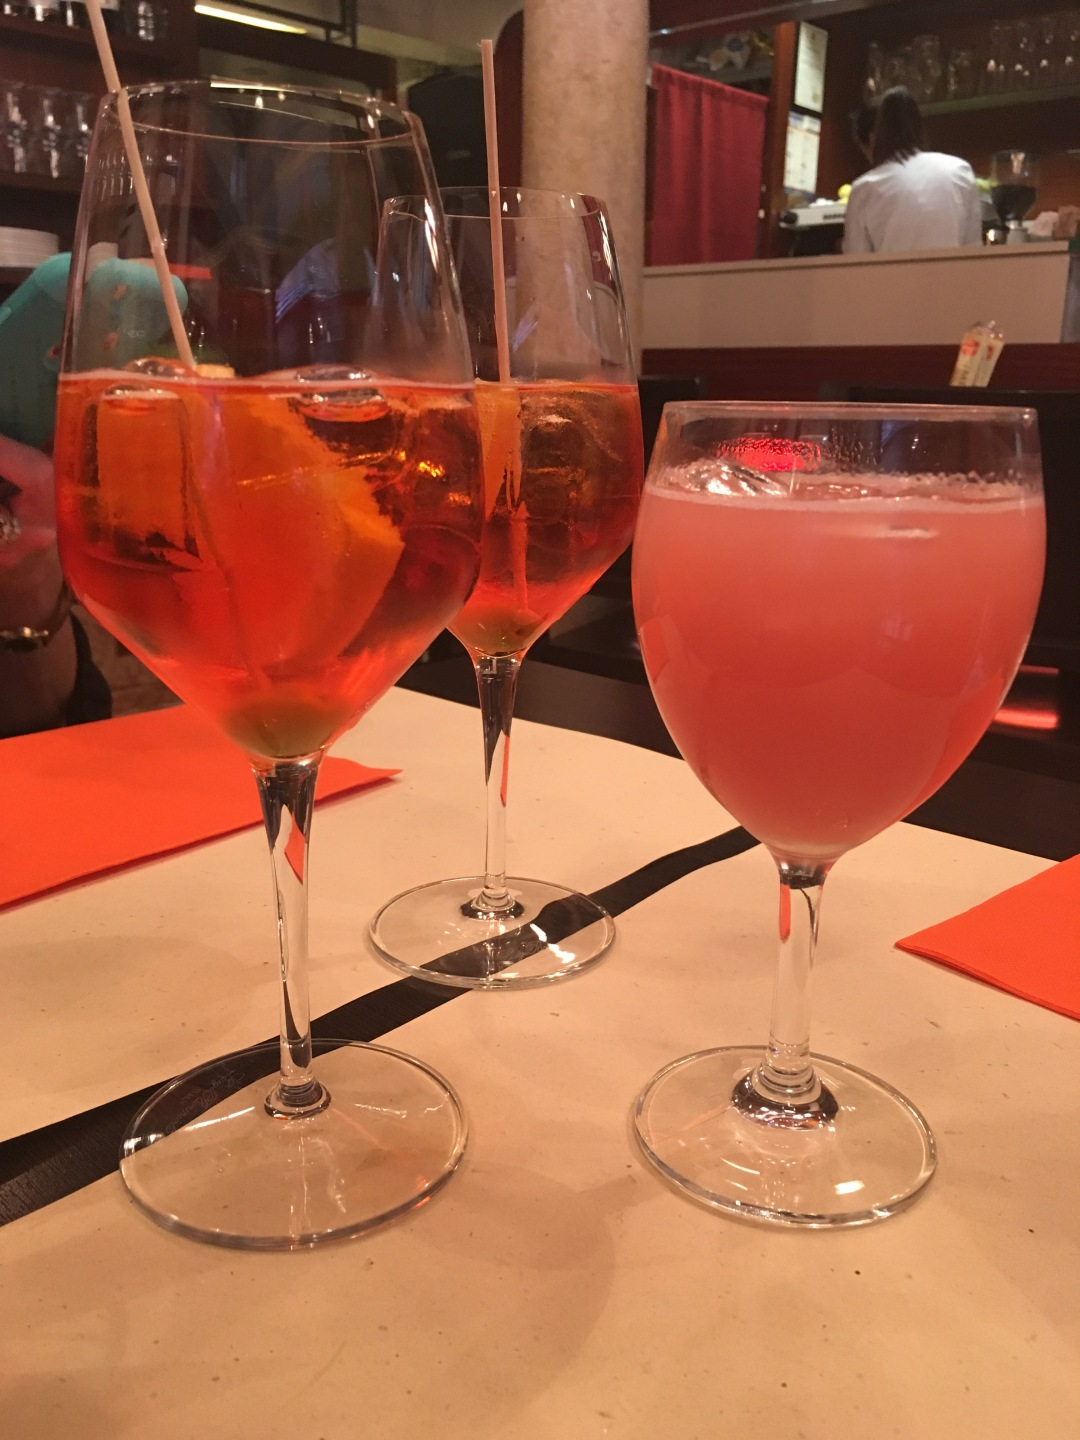 Aperol spritzes and bellinis during aperitivo - an Italy must do